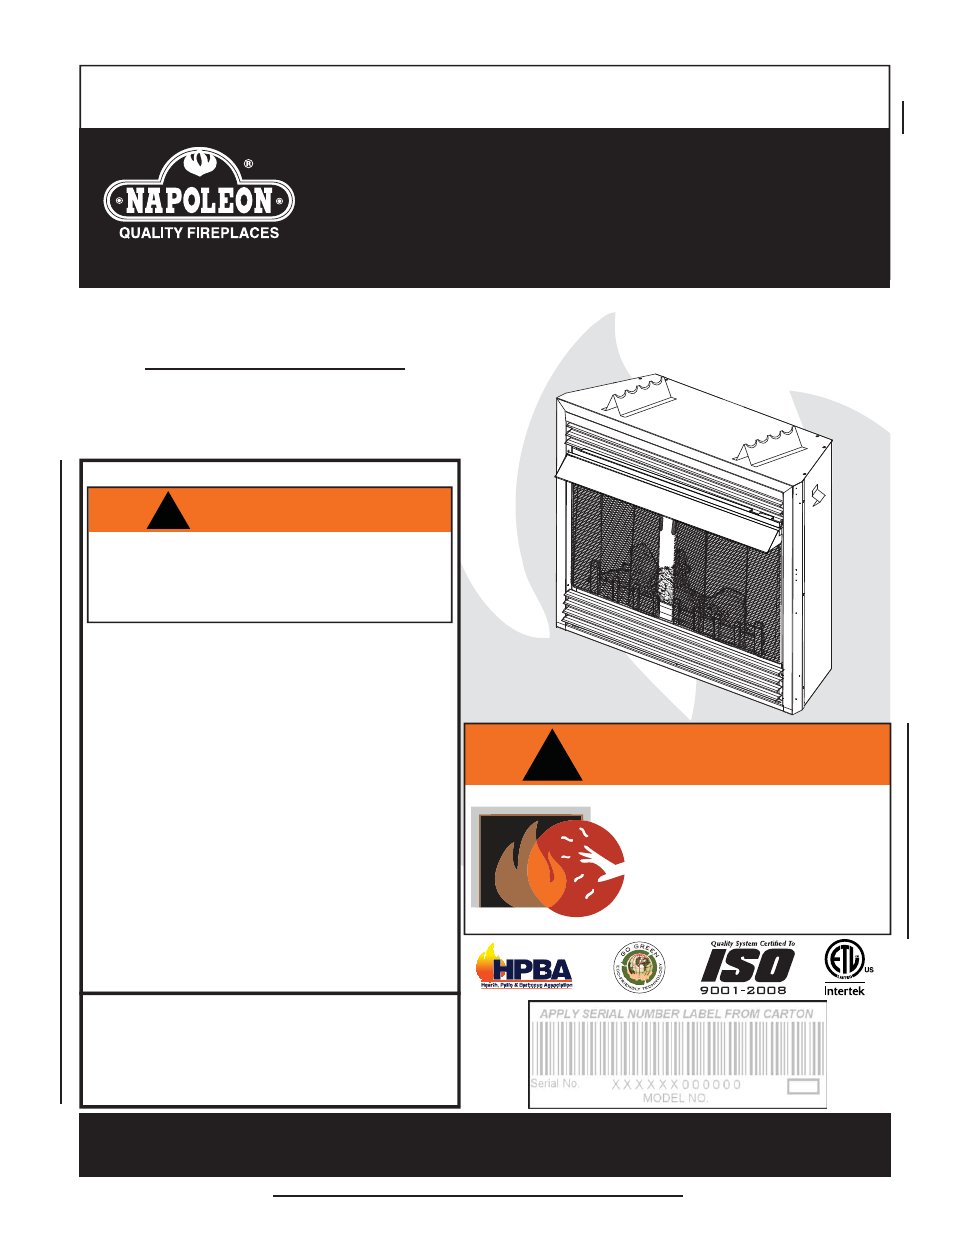 Napoleon fireplaces gvf36 user manual 28 pages cheapraybanclubmaster Image collections